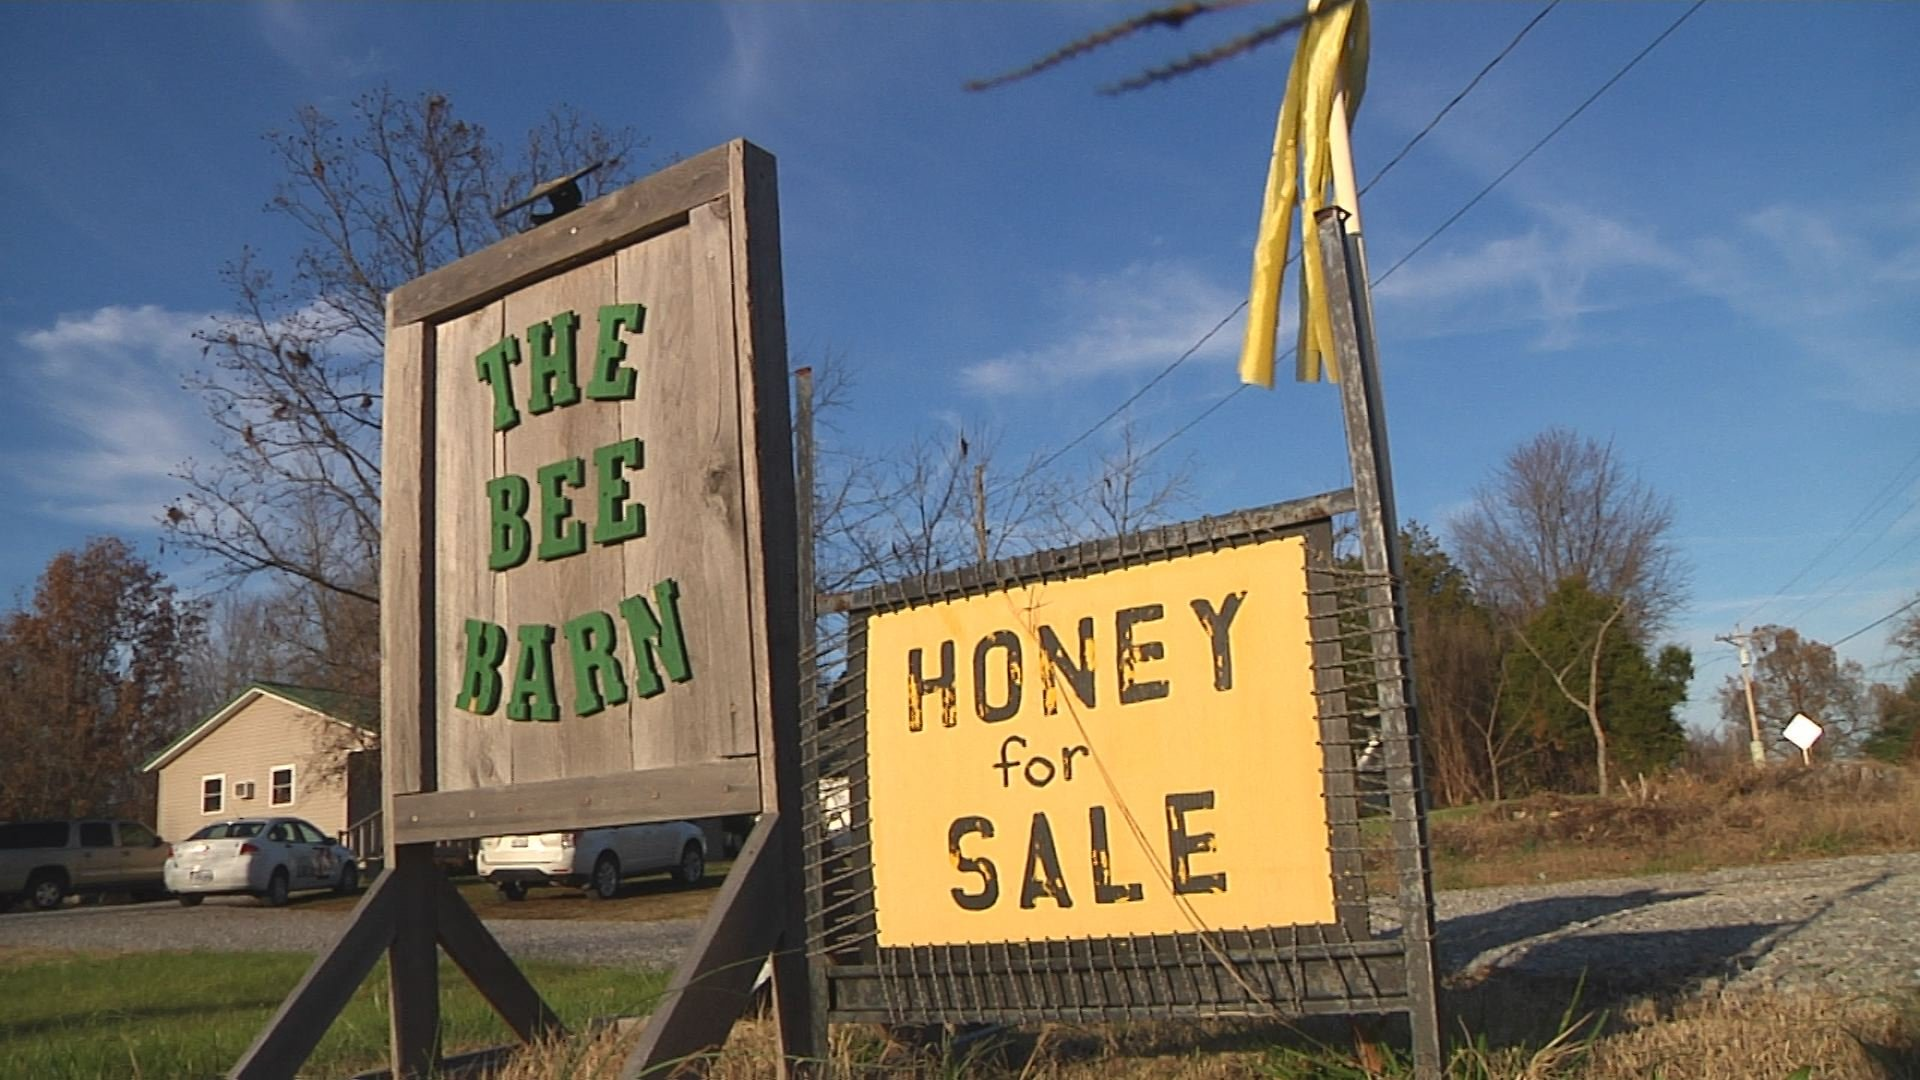 The Bee Barn in Paducah, KY